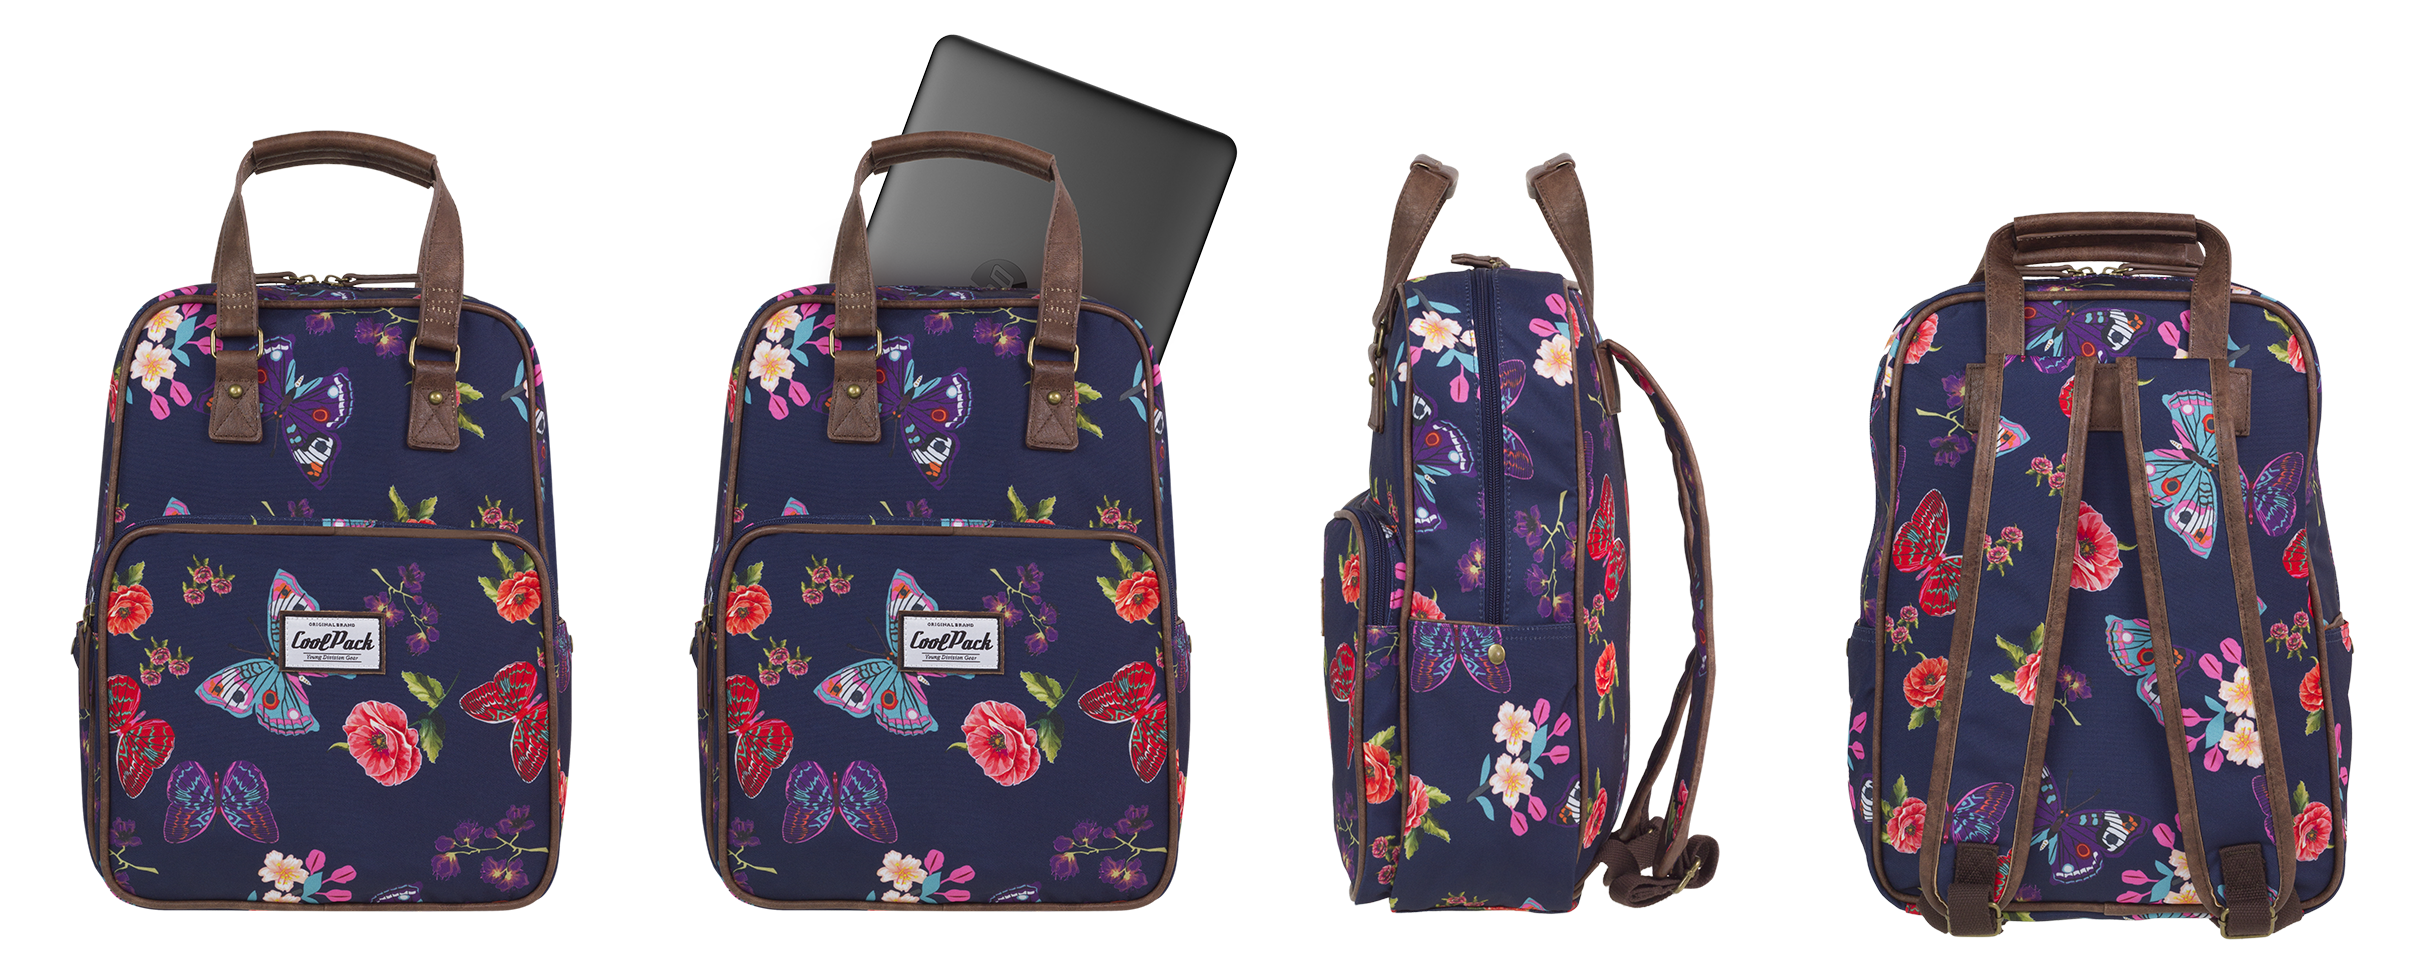 Coolpack - cubic - youth backpack - a099 - vintage